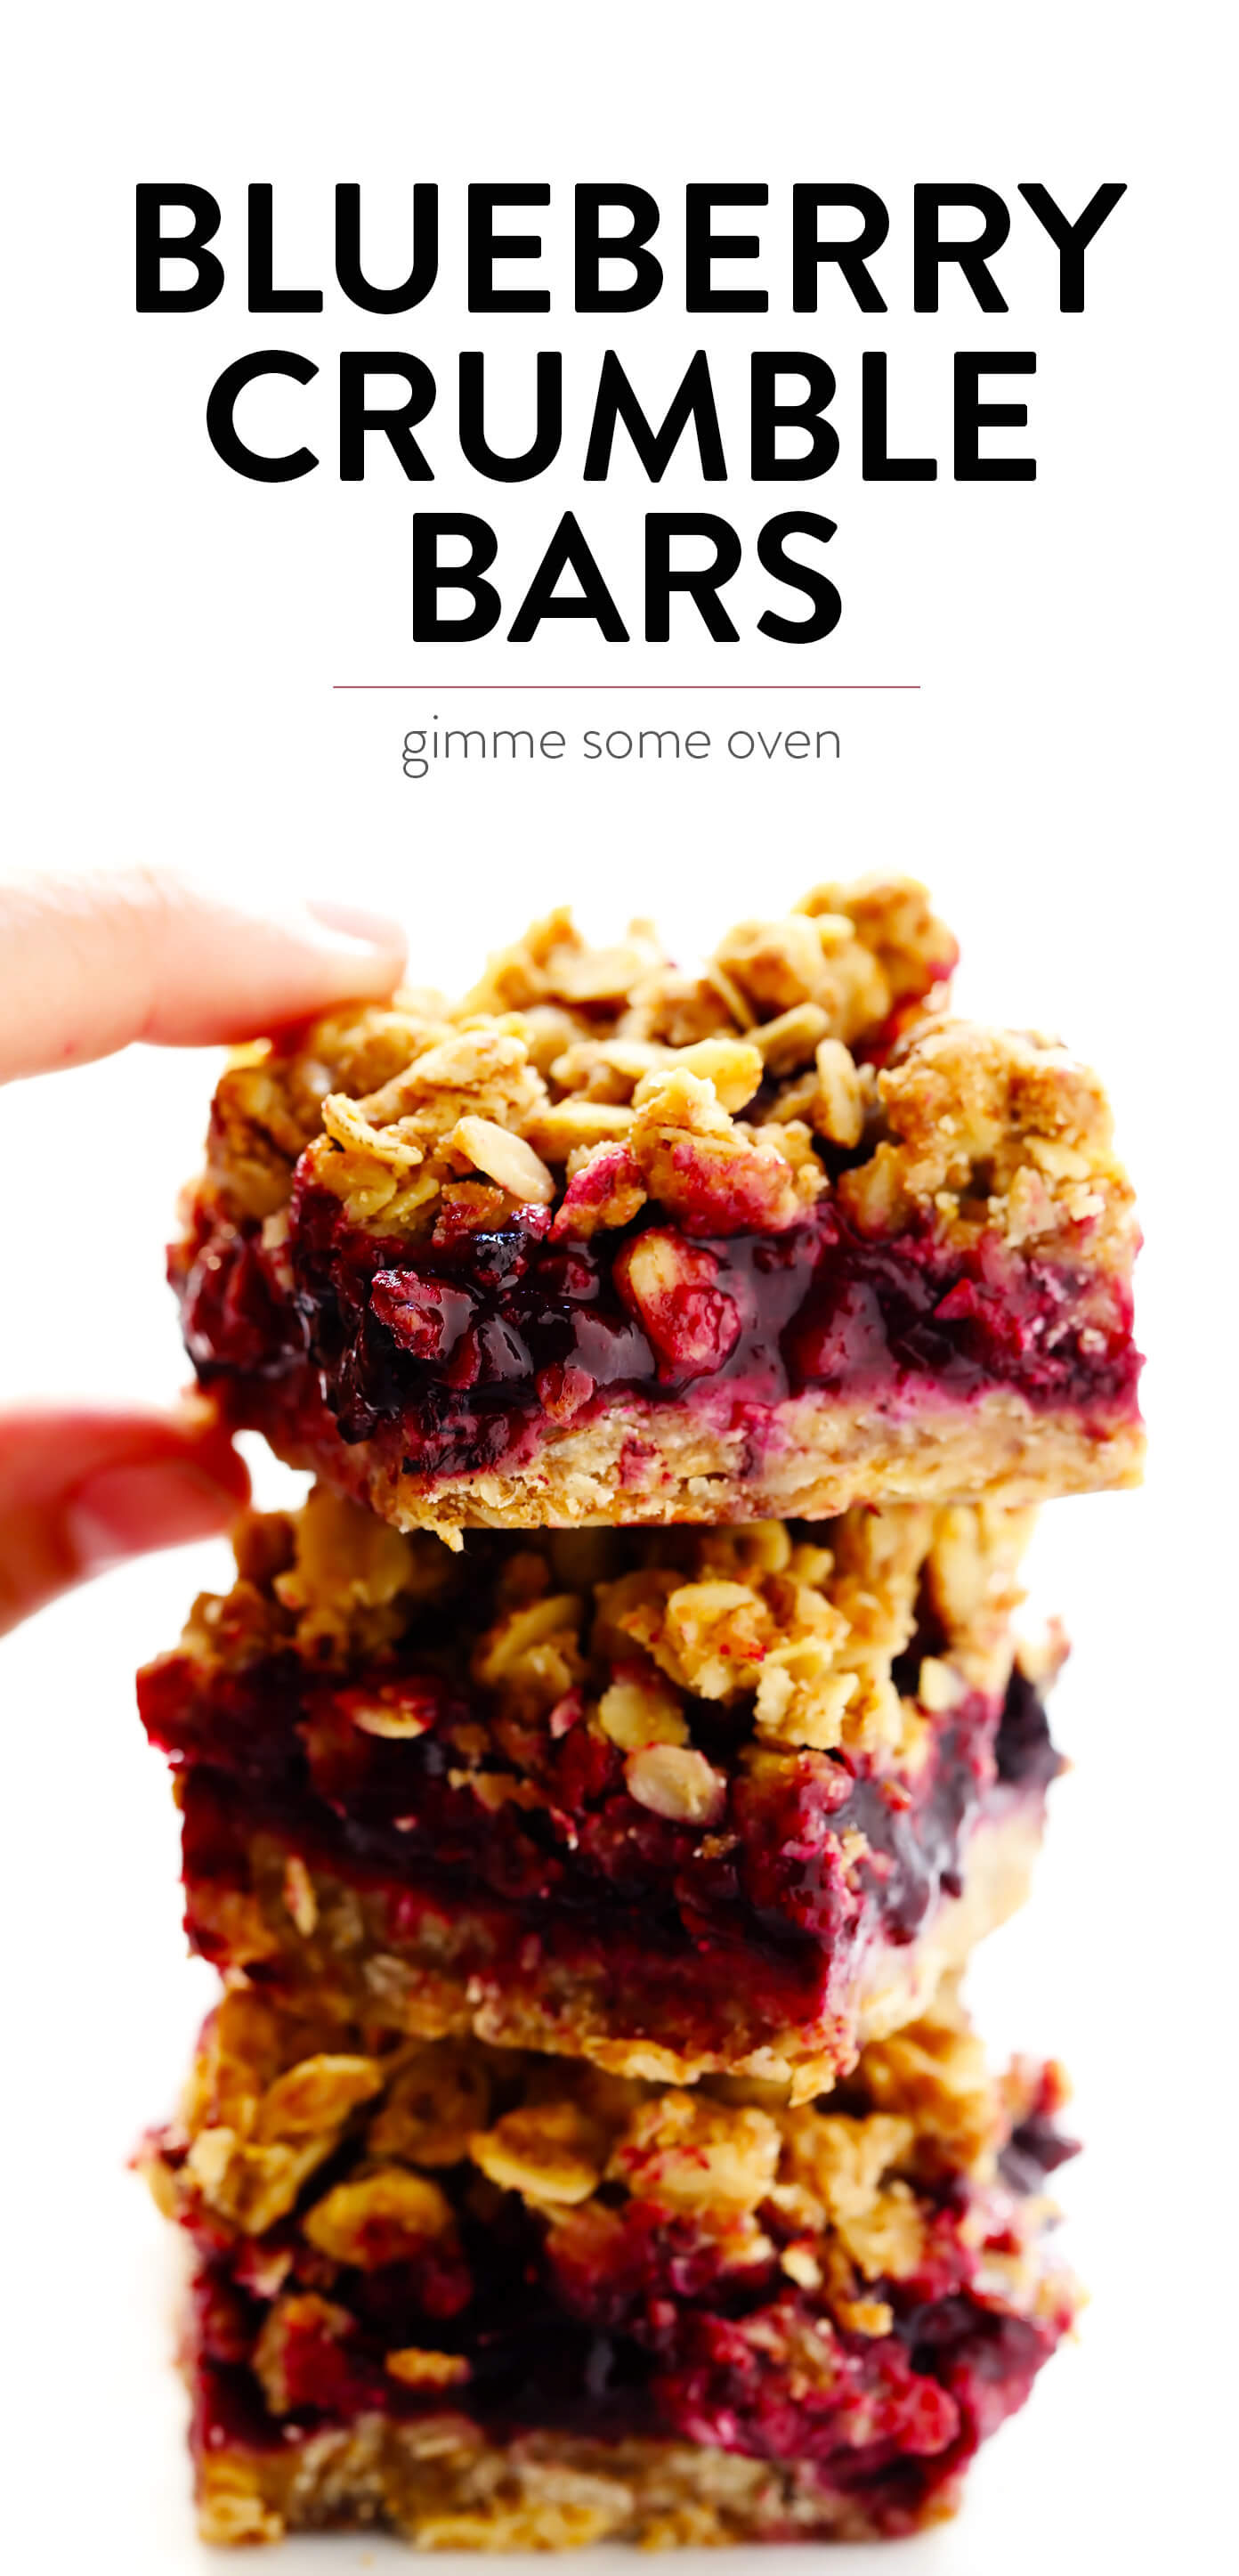 Blueberry Crumble Bars Recipe from Gimme Some Oven